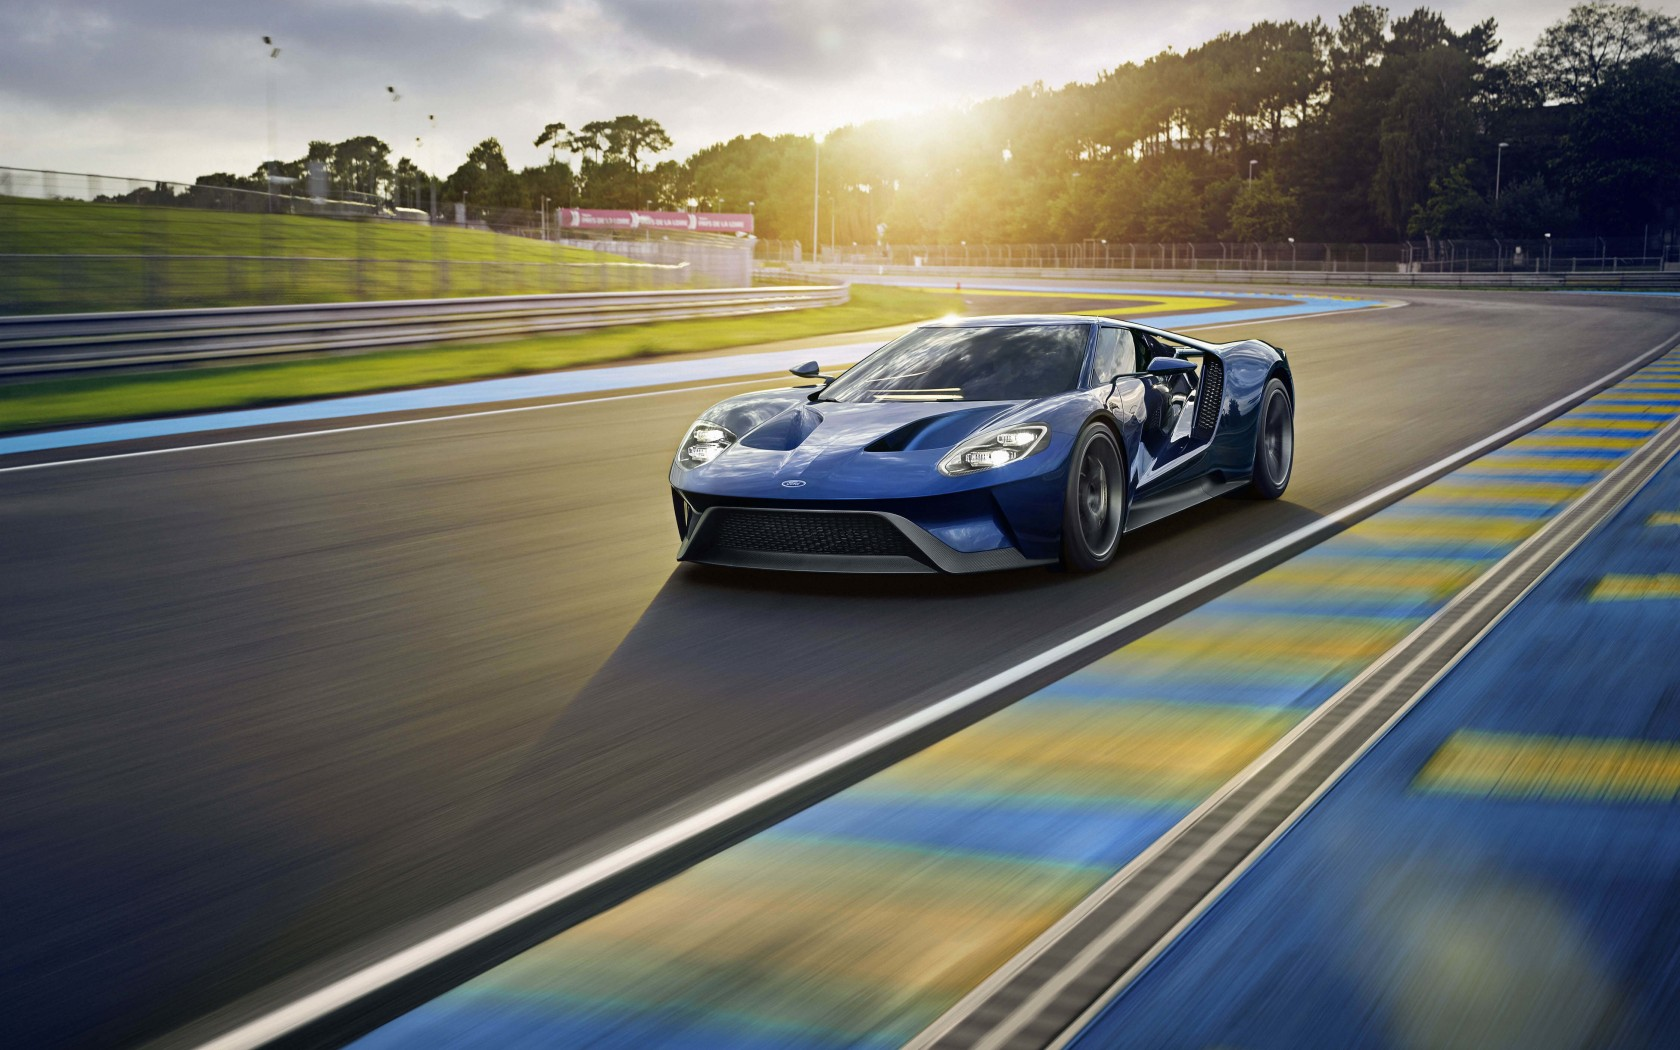 Ford GT Supercar Wallpaper for Desktop 1680x1050